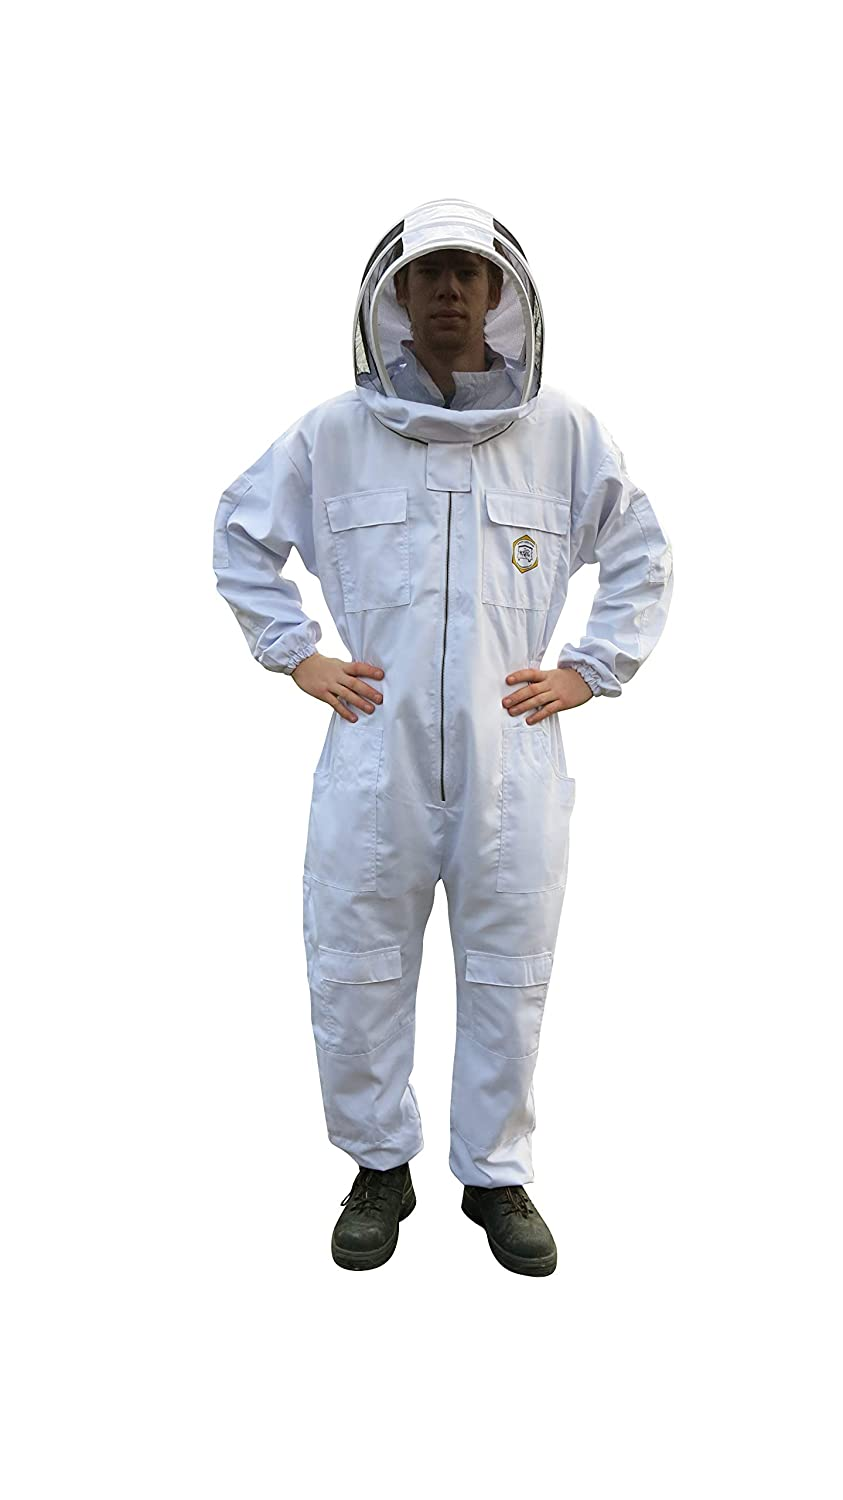 Apiary Additions お歳暮 卓抜 Beekeeping Suit with Metal Zip Veil Fencing and